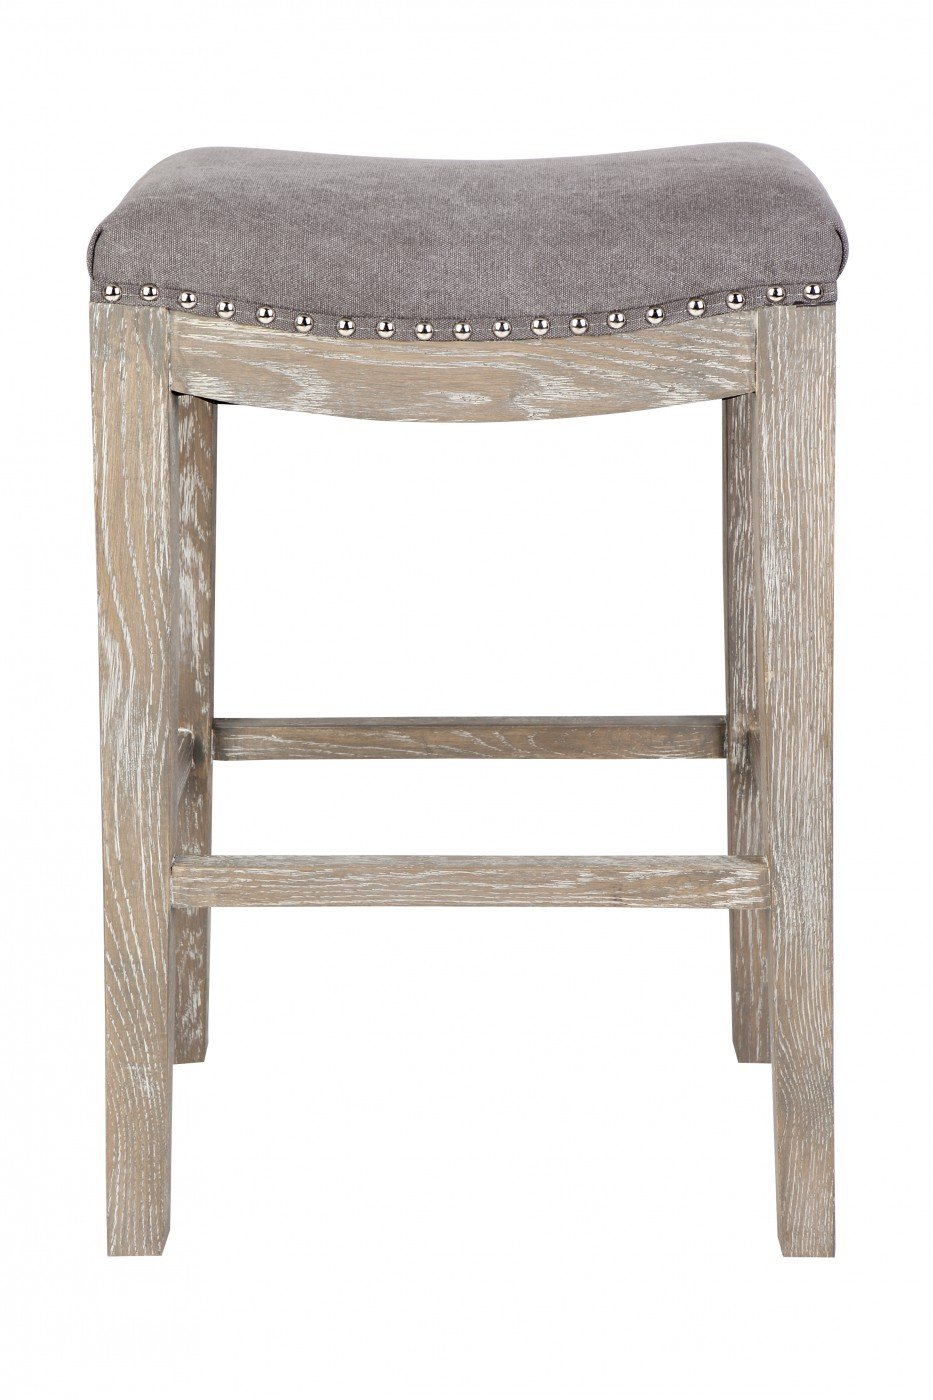 Image of BOSTON BAR STOOL GREY